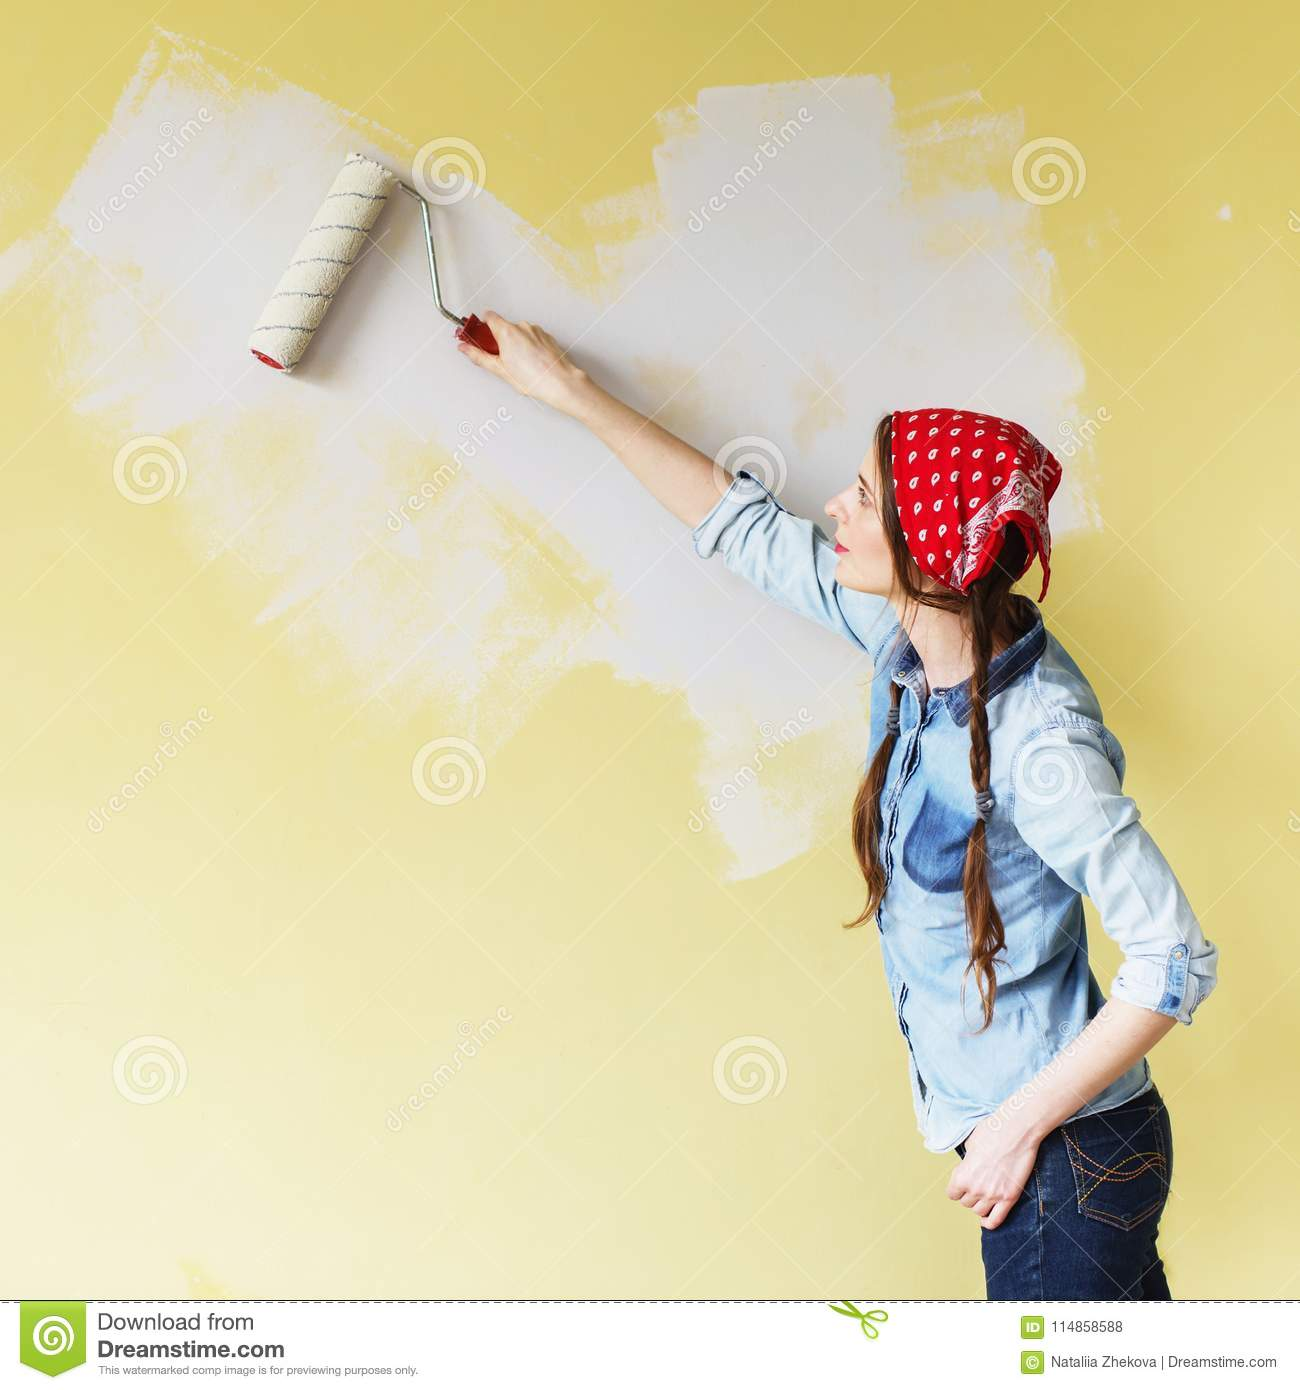 Beautiful Girl In Red Headband Painting The Wall With Paint Roll ...